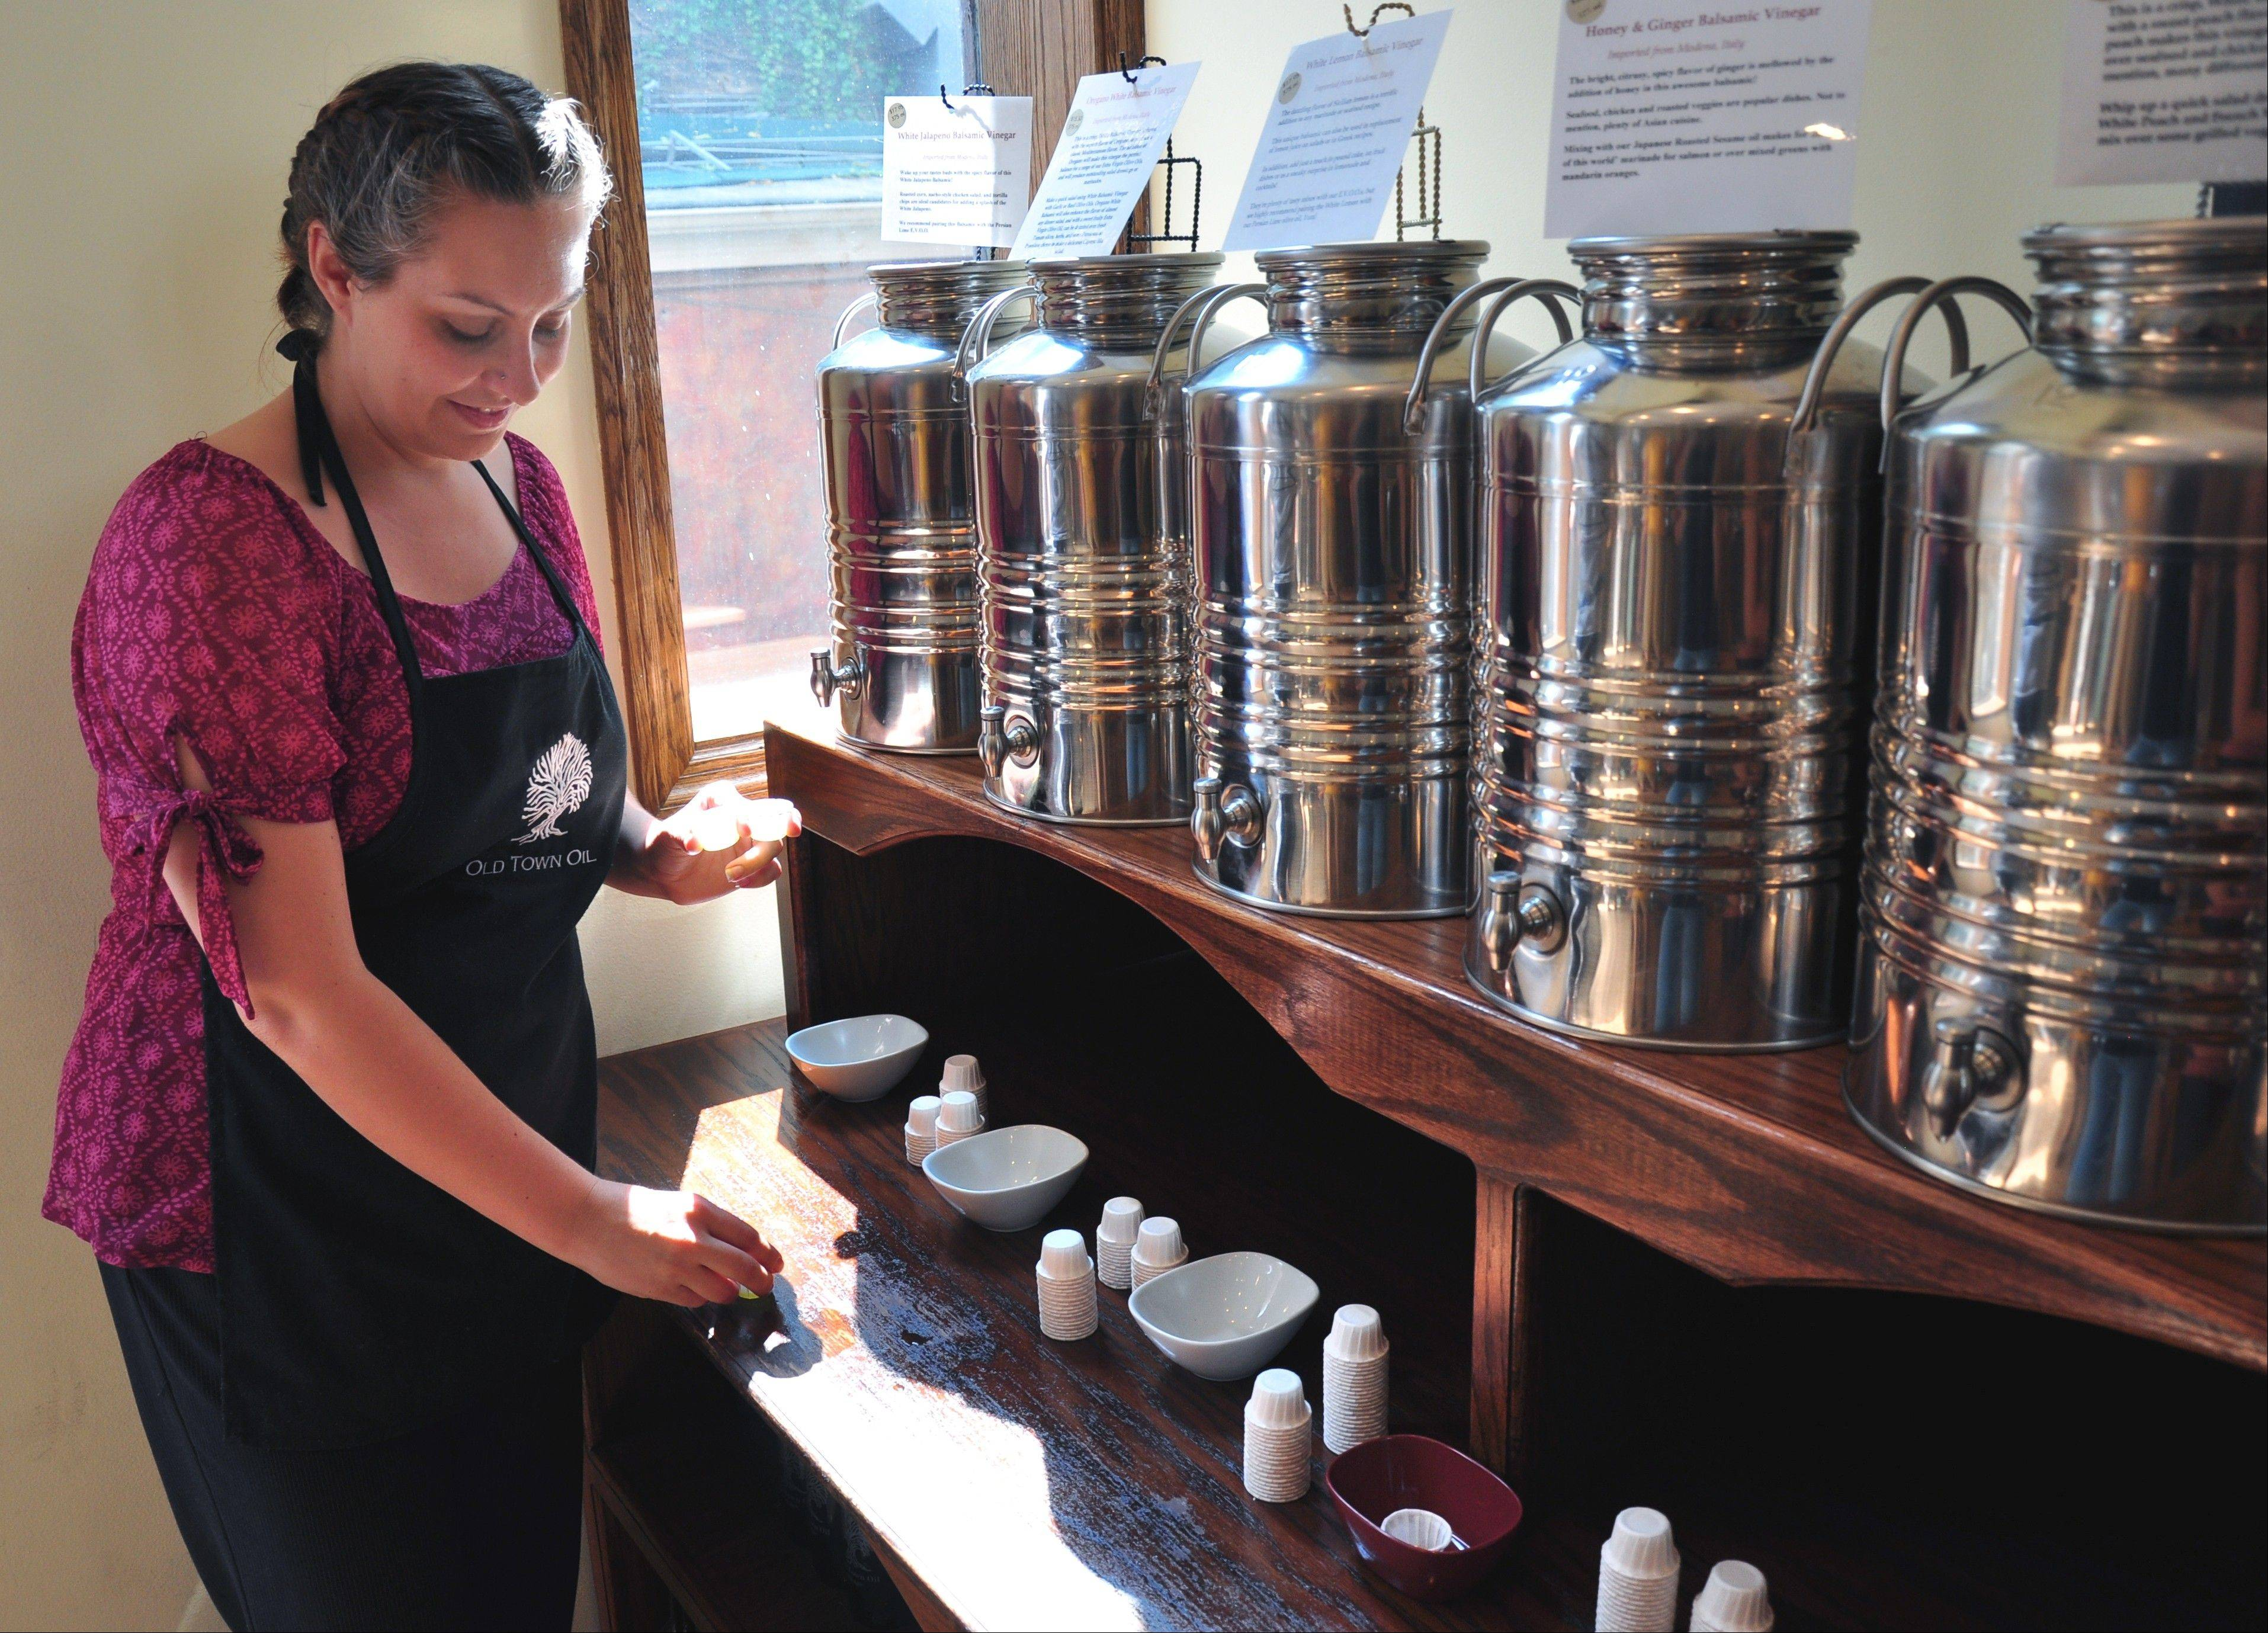 An Old Town Oil employee tends to containers of flavored balsamic vinegar for tasting.